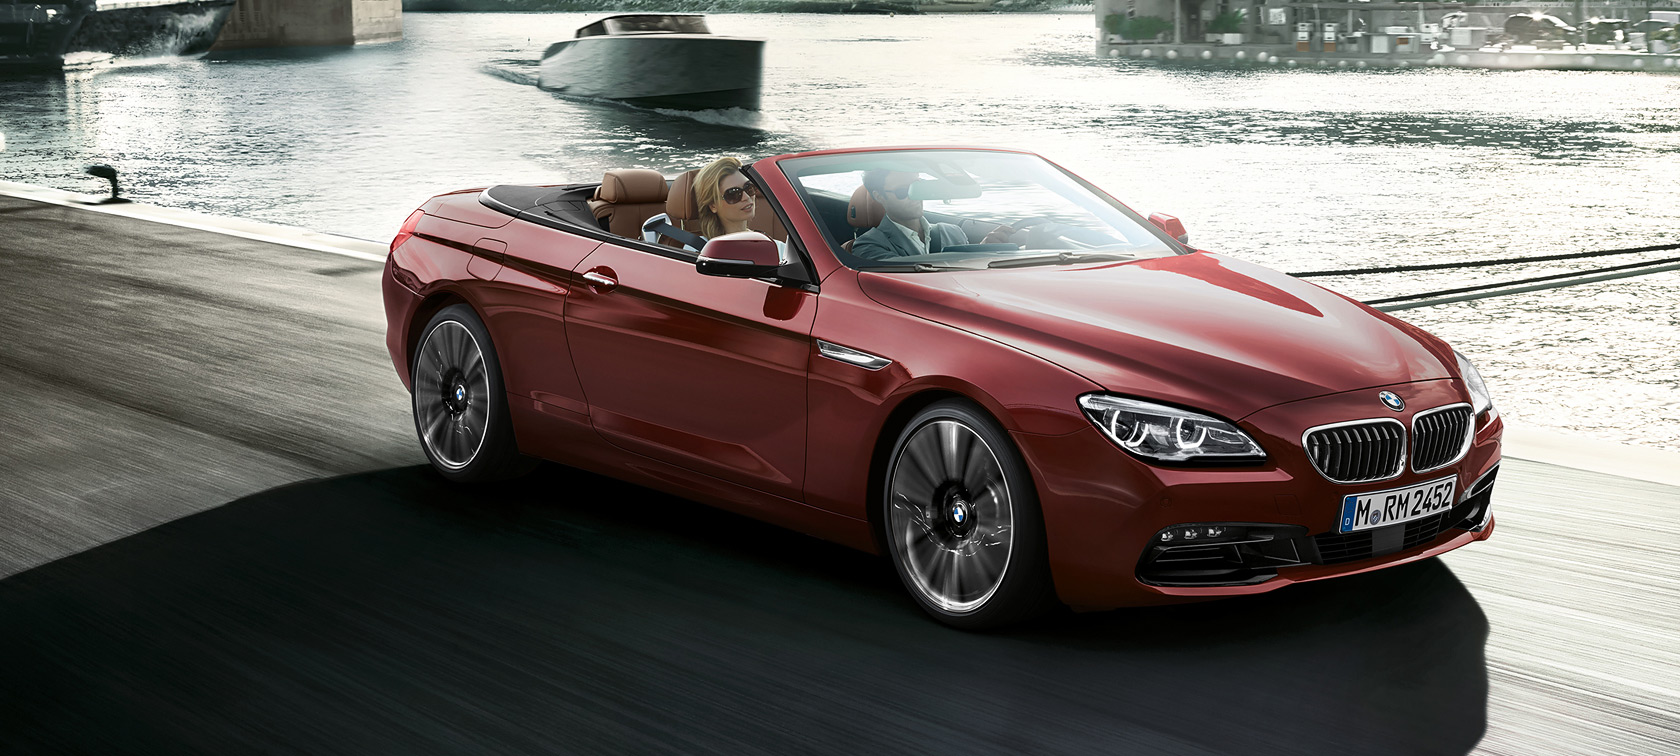 The design of the BMW 6 Series Convertible